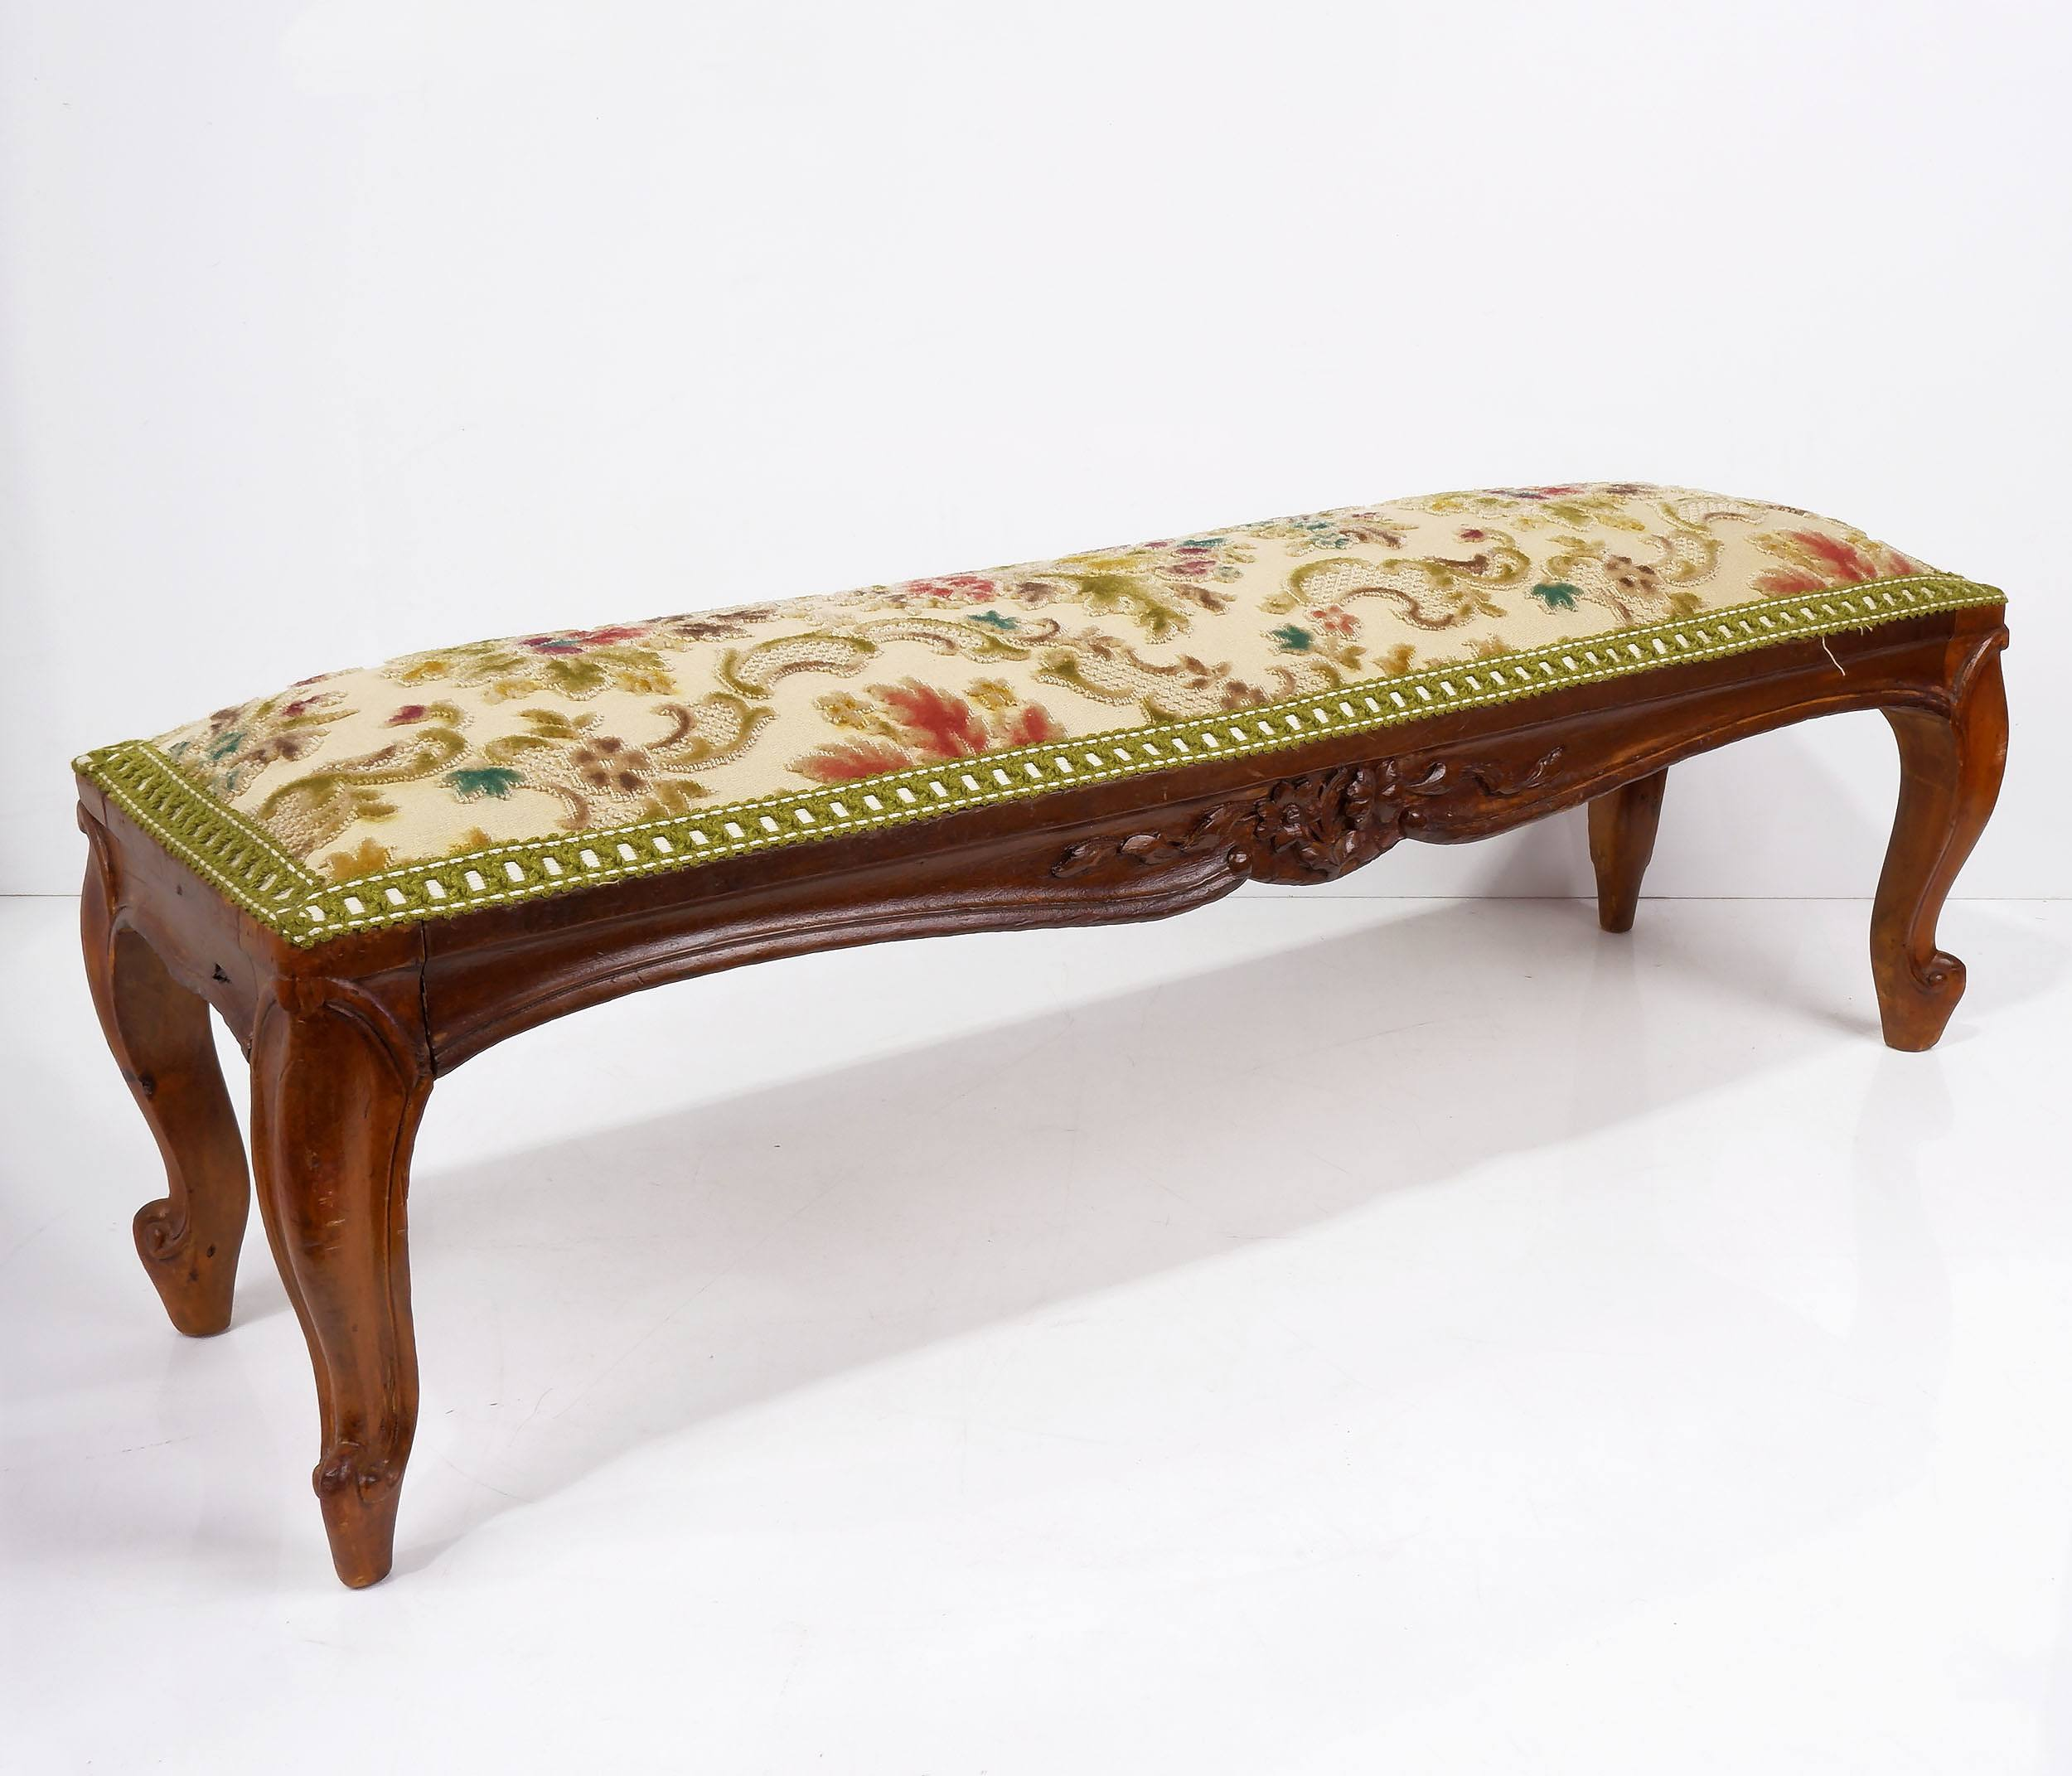 'Louis Style Carved Oak Footstool with Cut Velvet Upholstery'